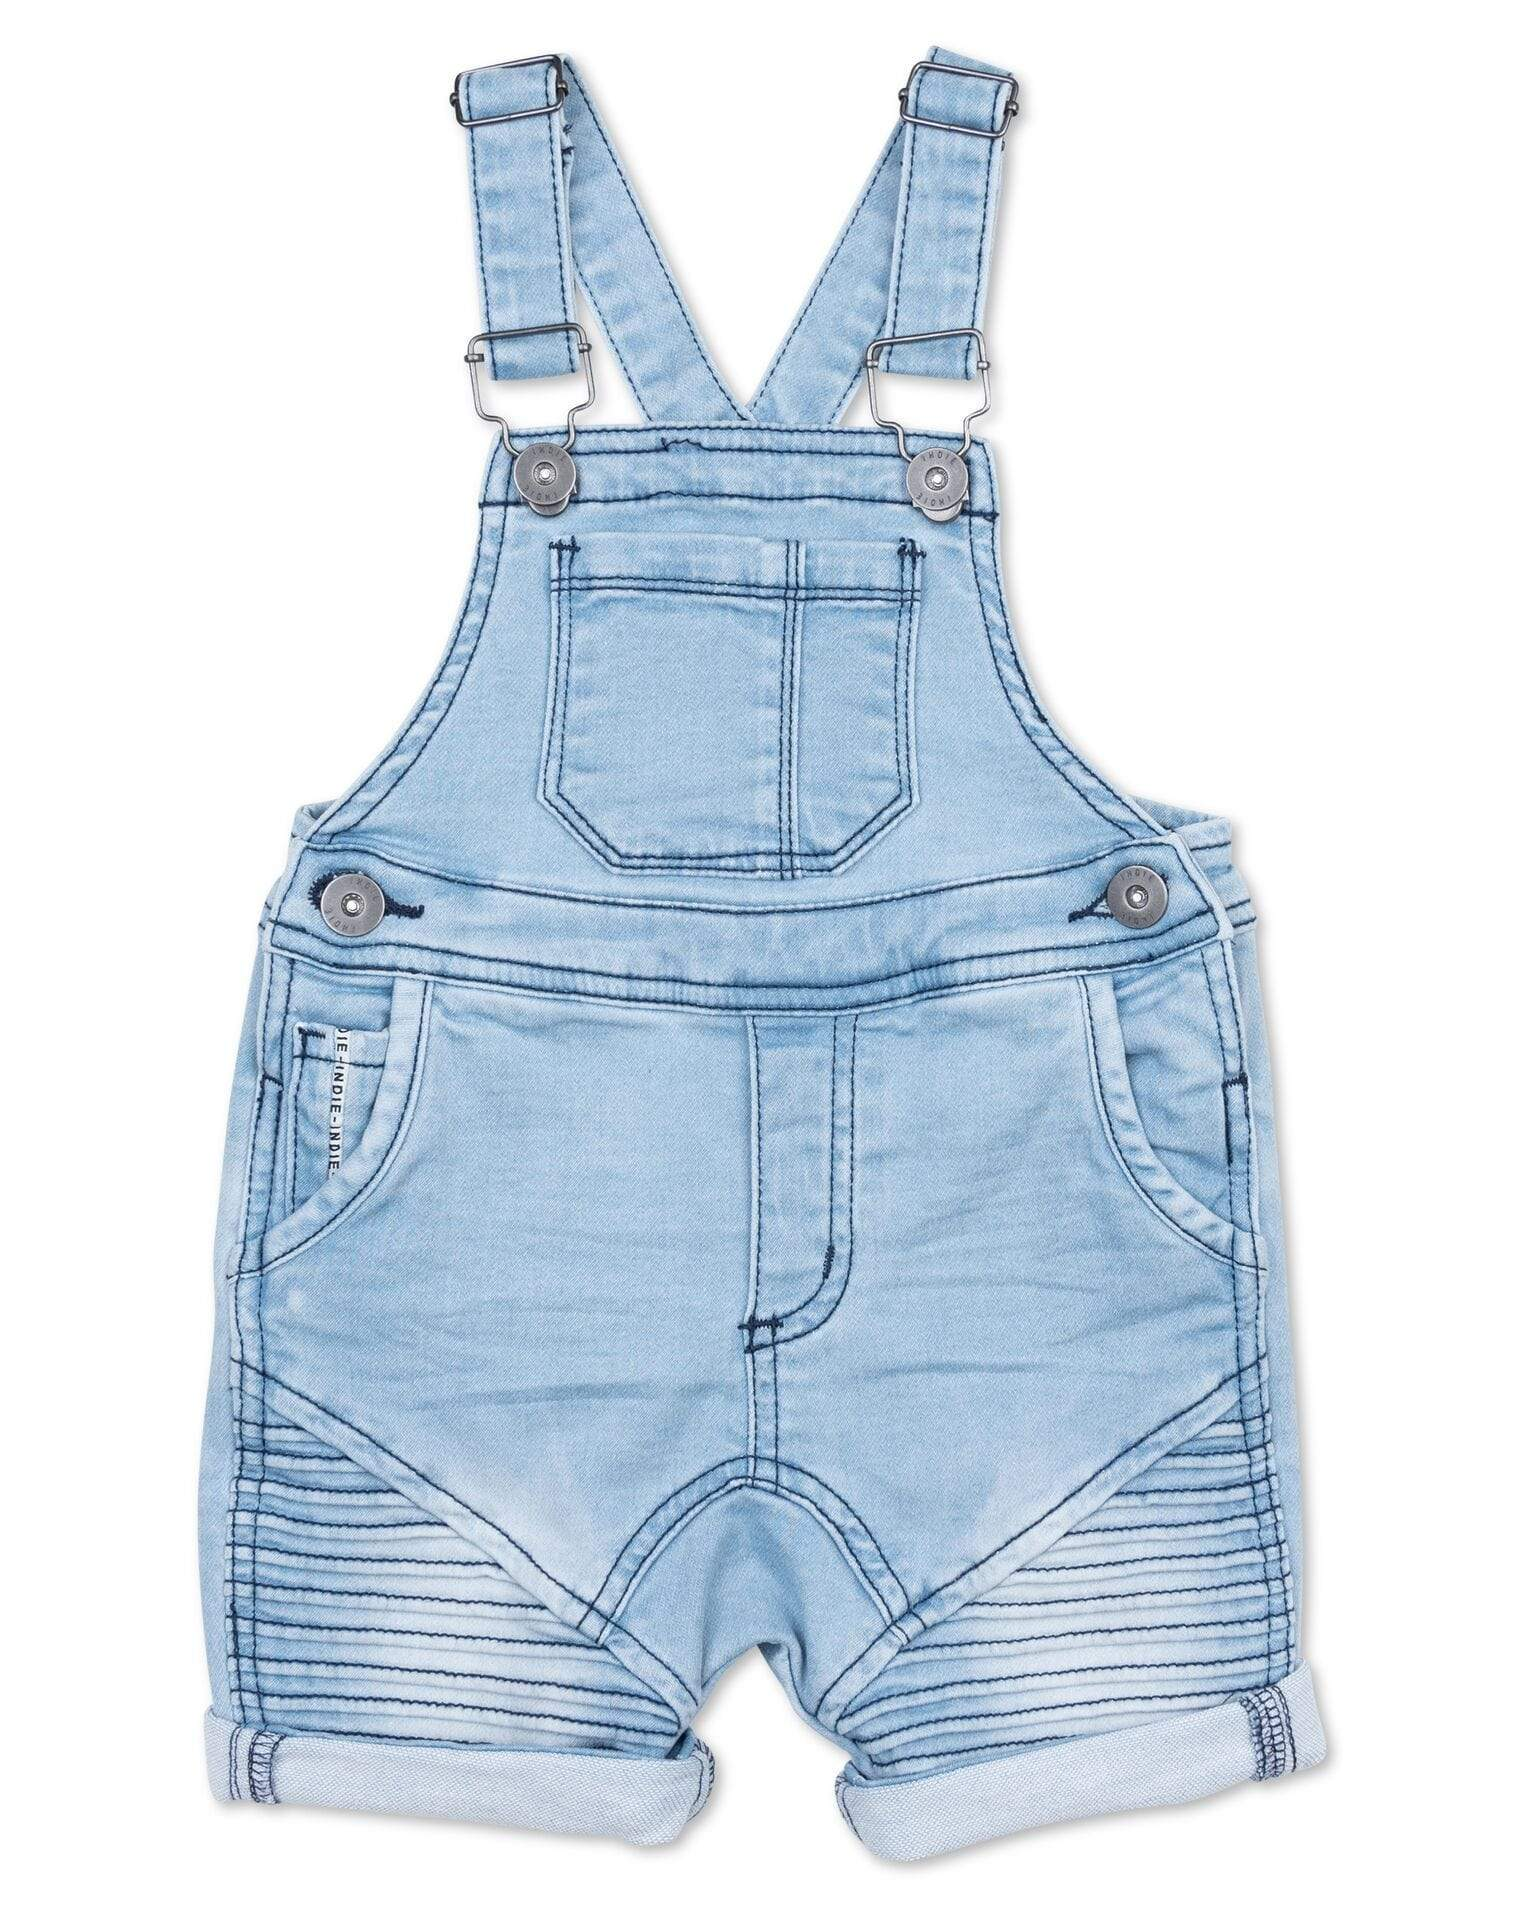 Indie Kids Jeans 000 Indie Kids Styled Short Dungaree Mid Denim